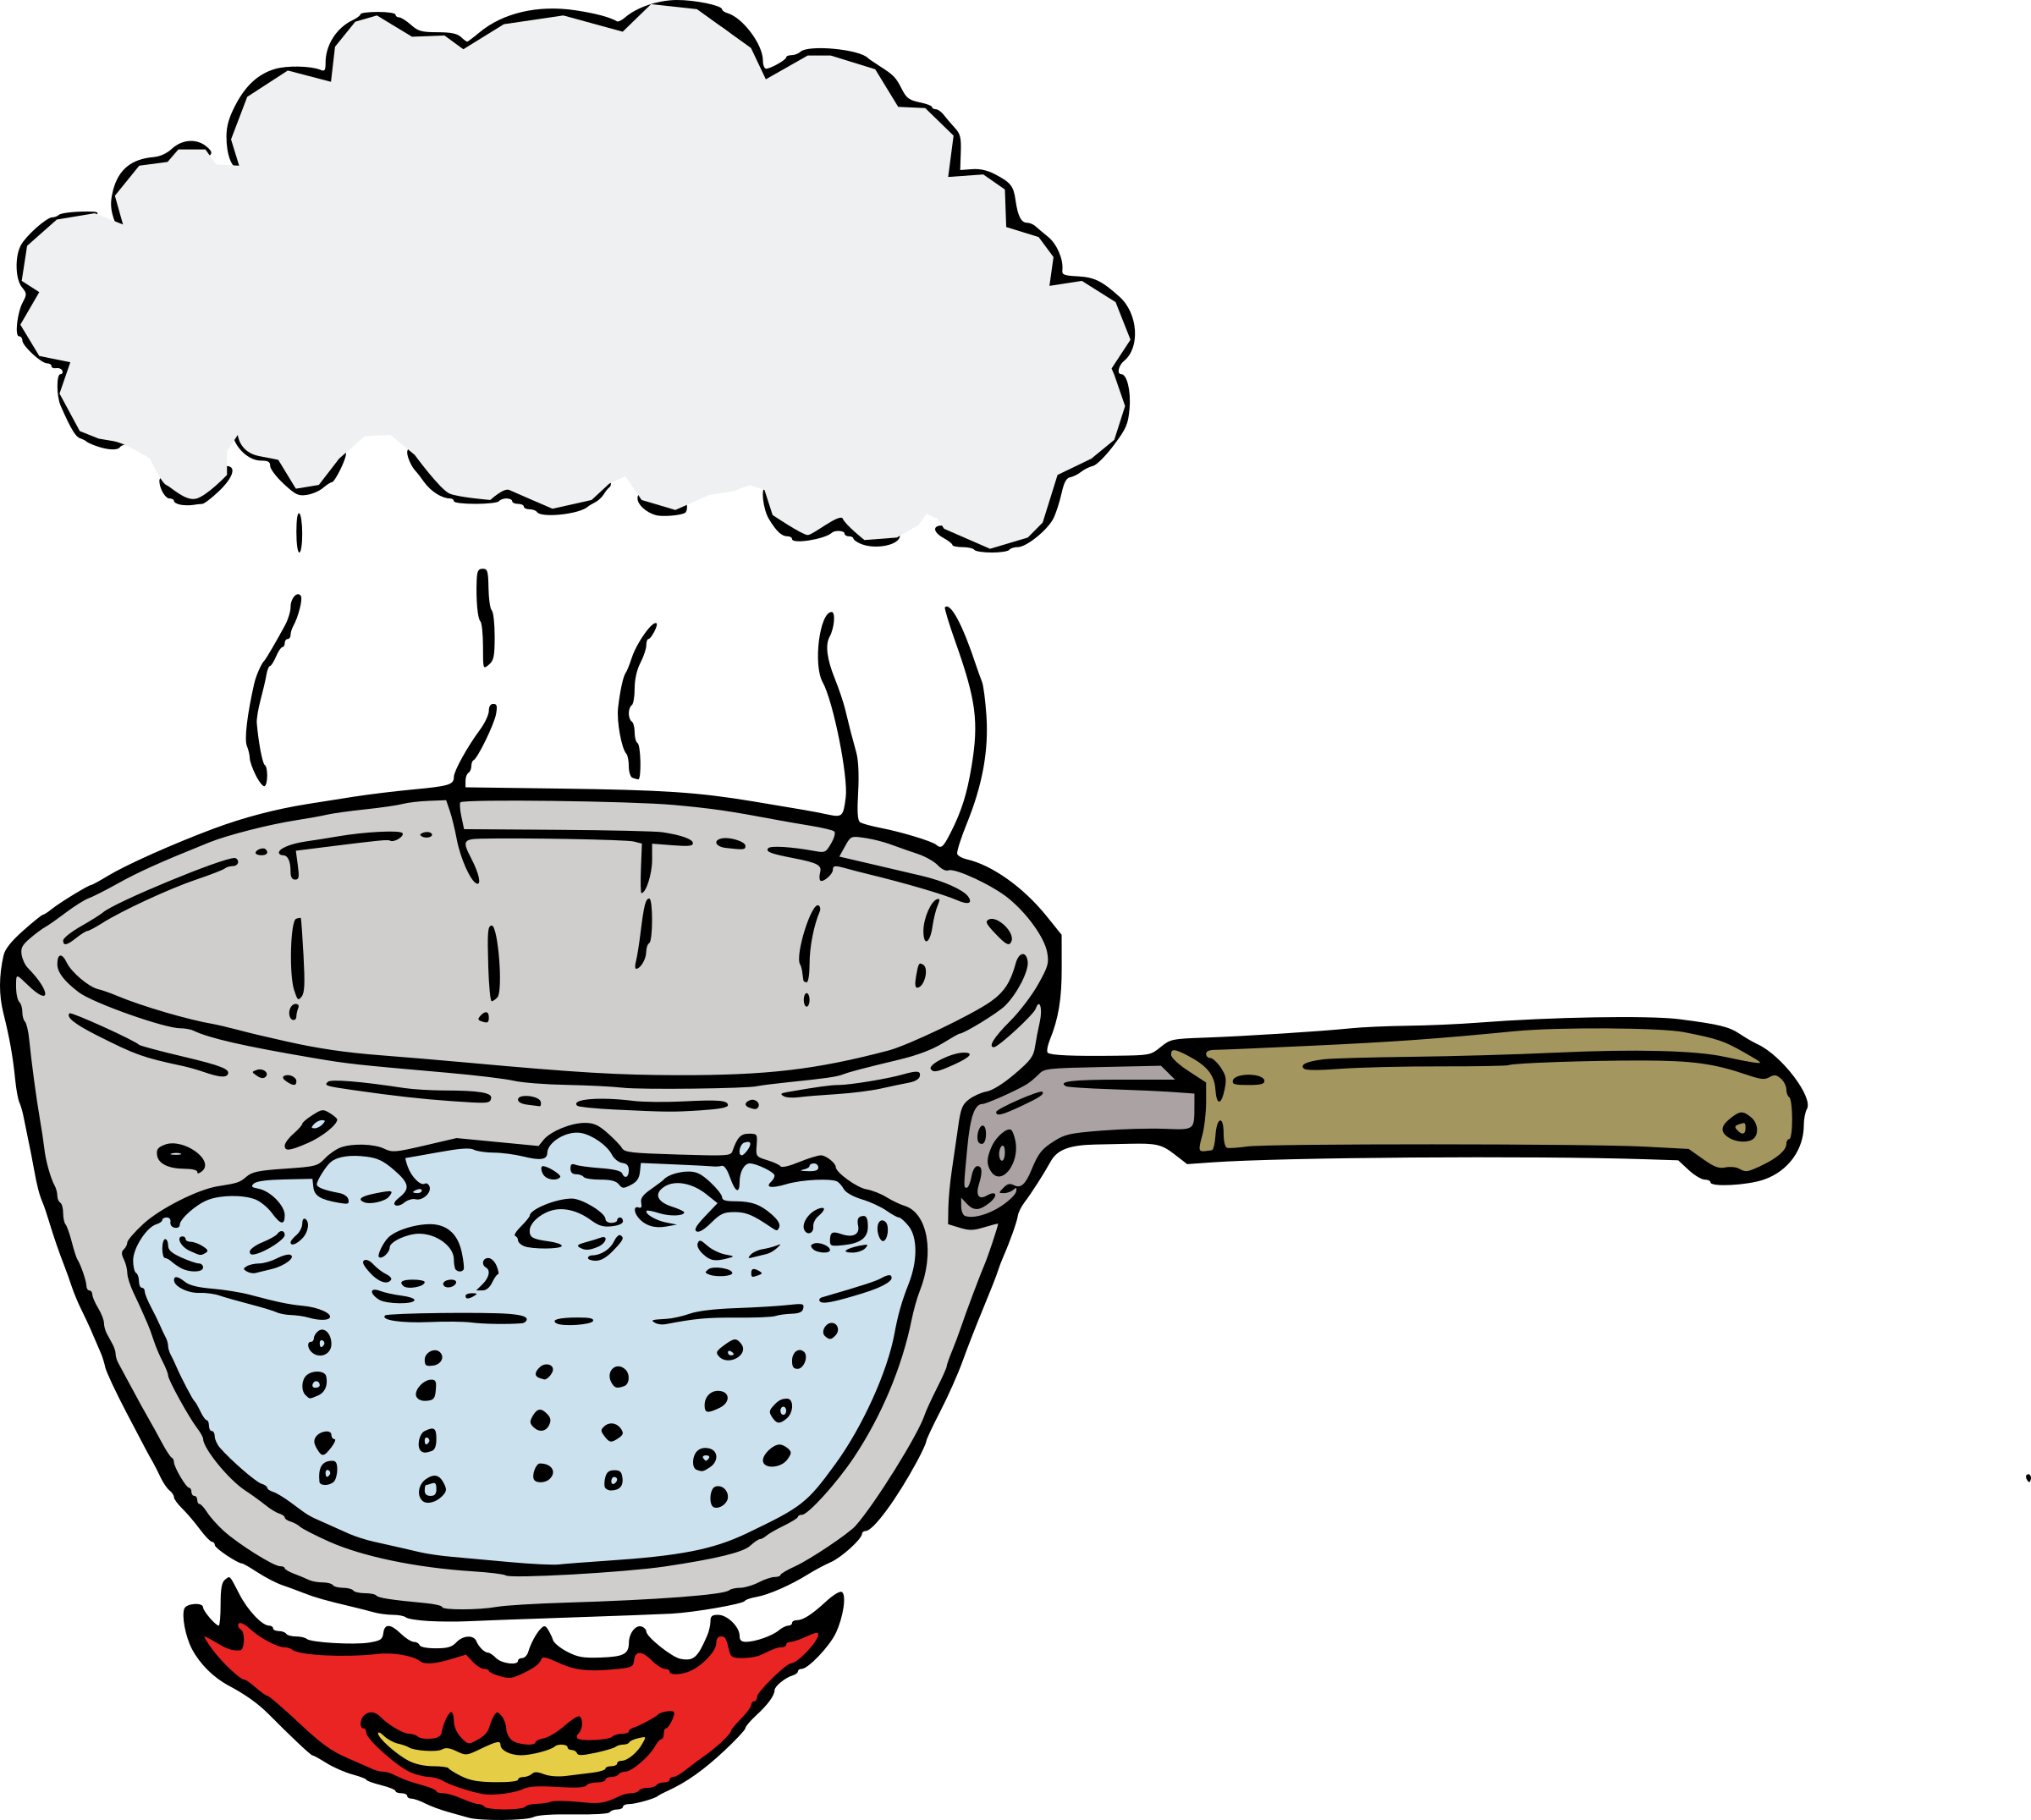 royalty free Boiling Water Drawing at GetDrawings